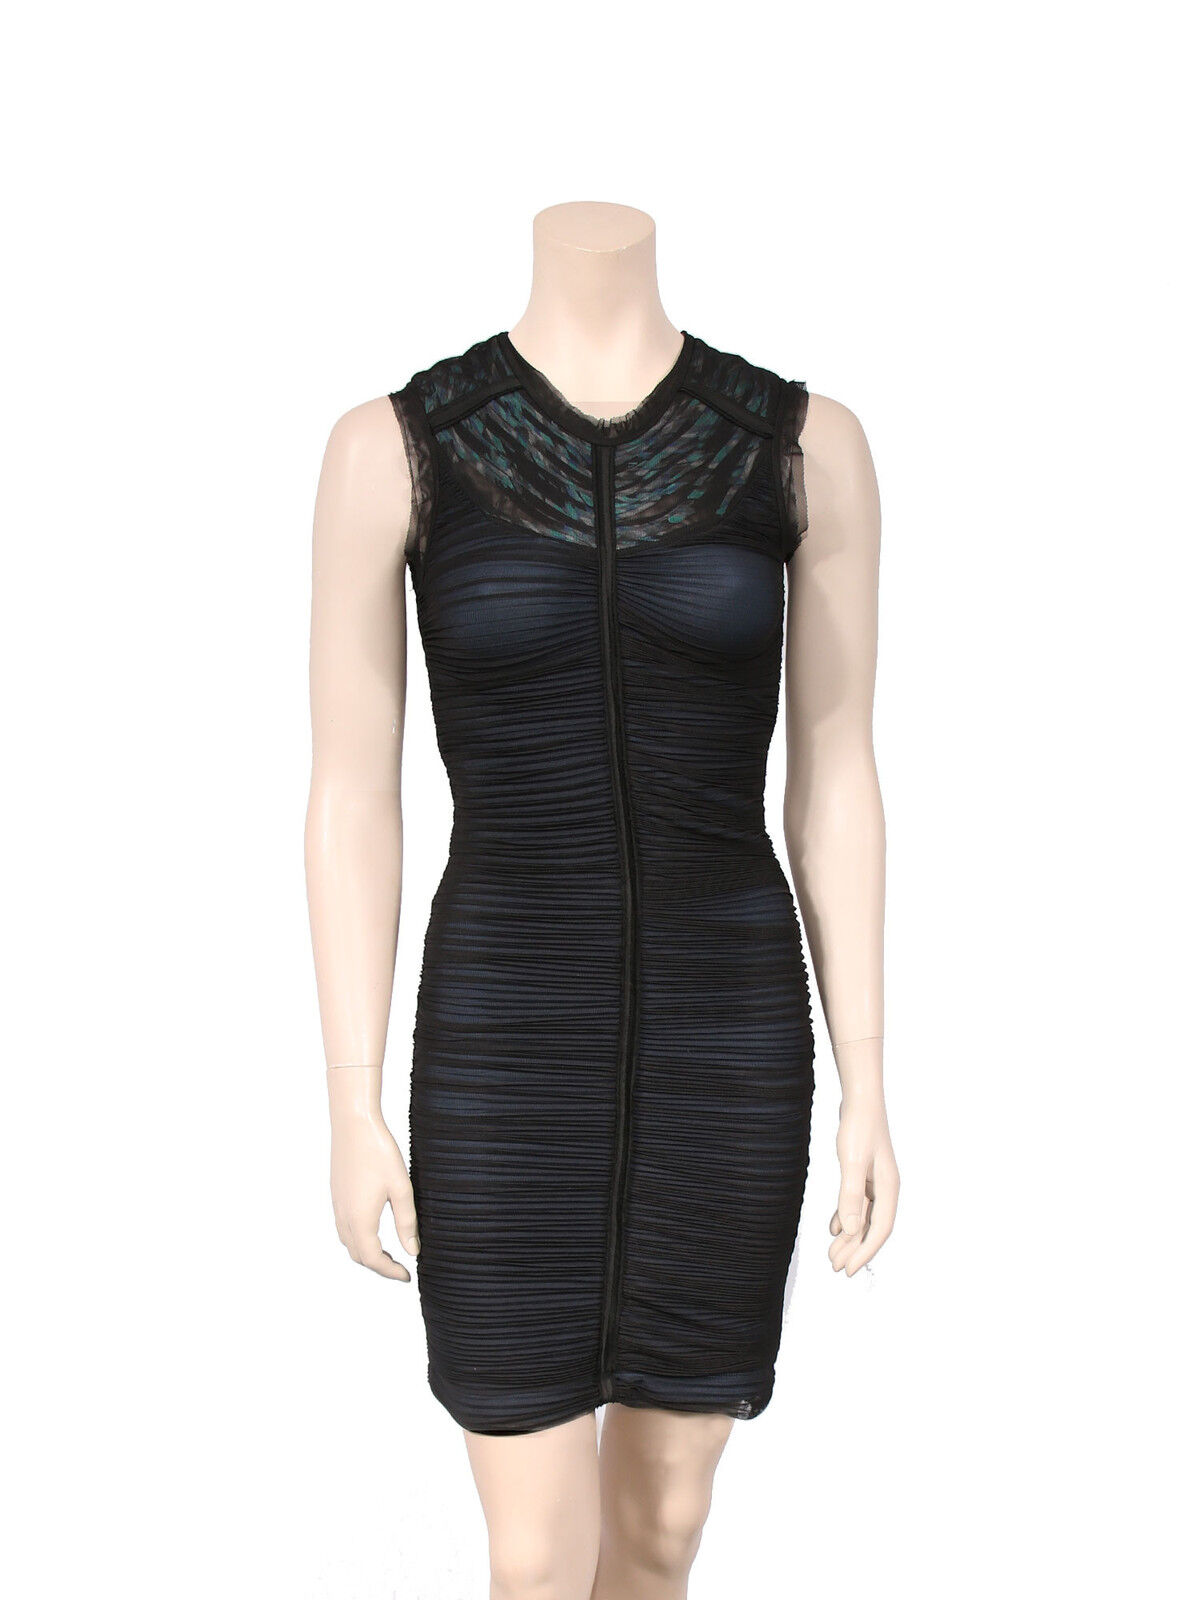 BCBG MAXAZRIA Ruched Dress SIZE XS